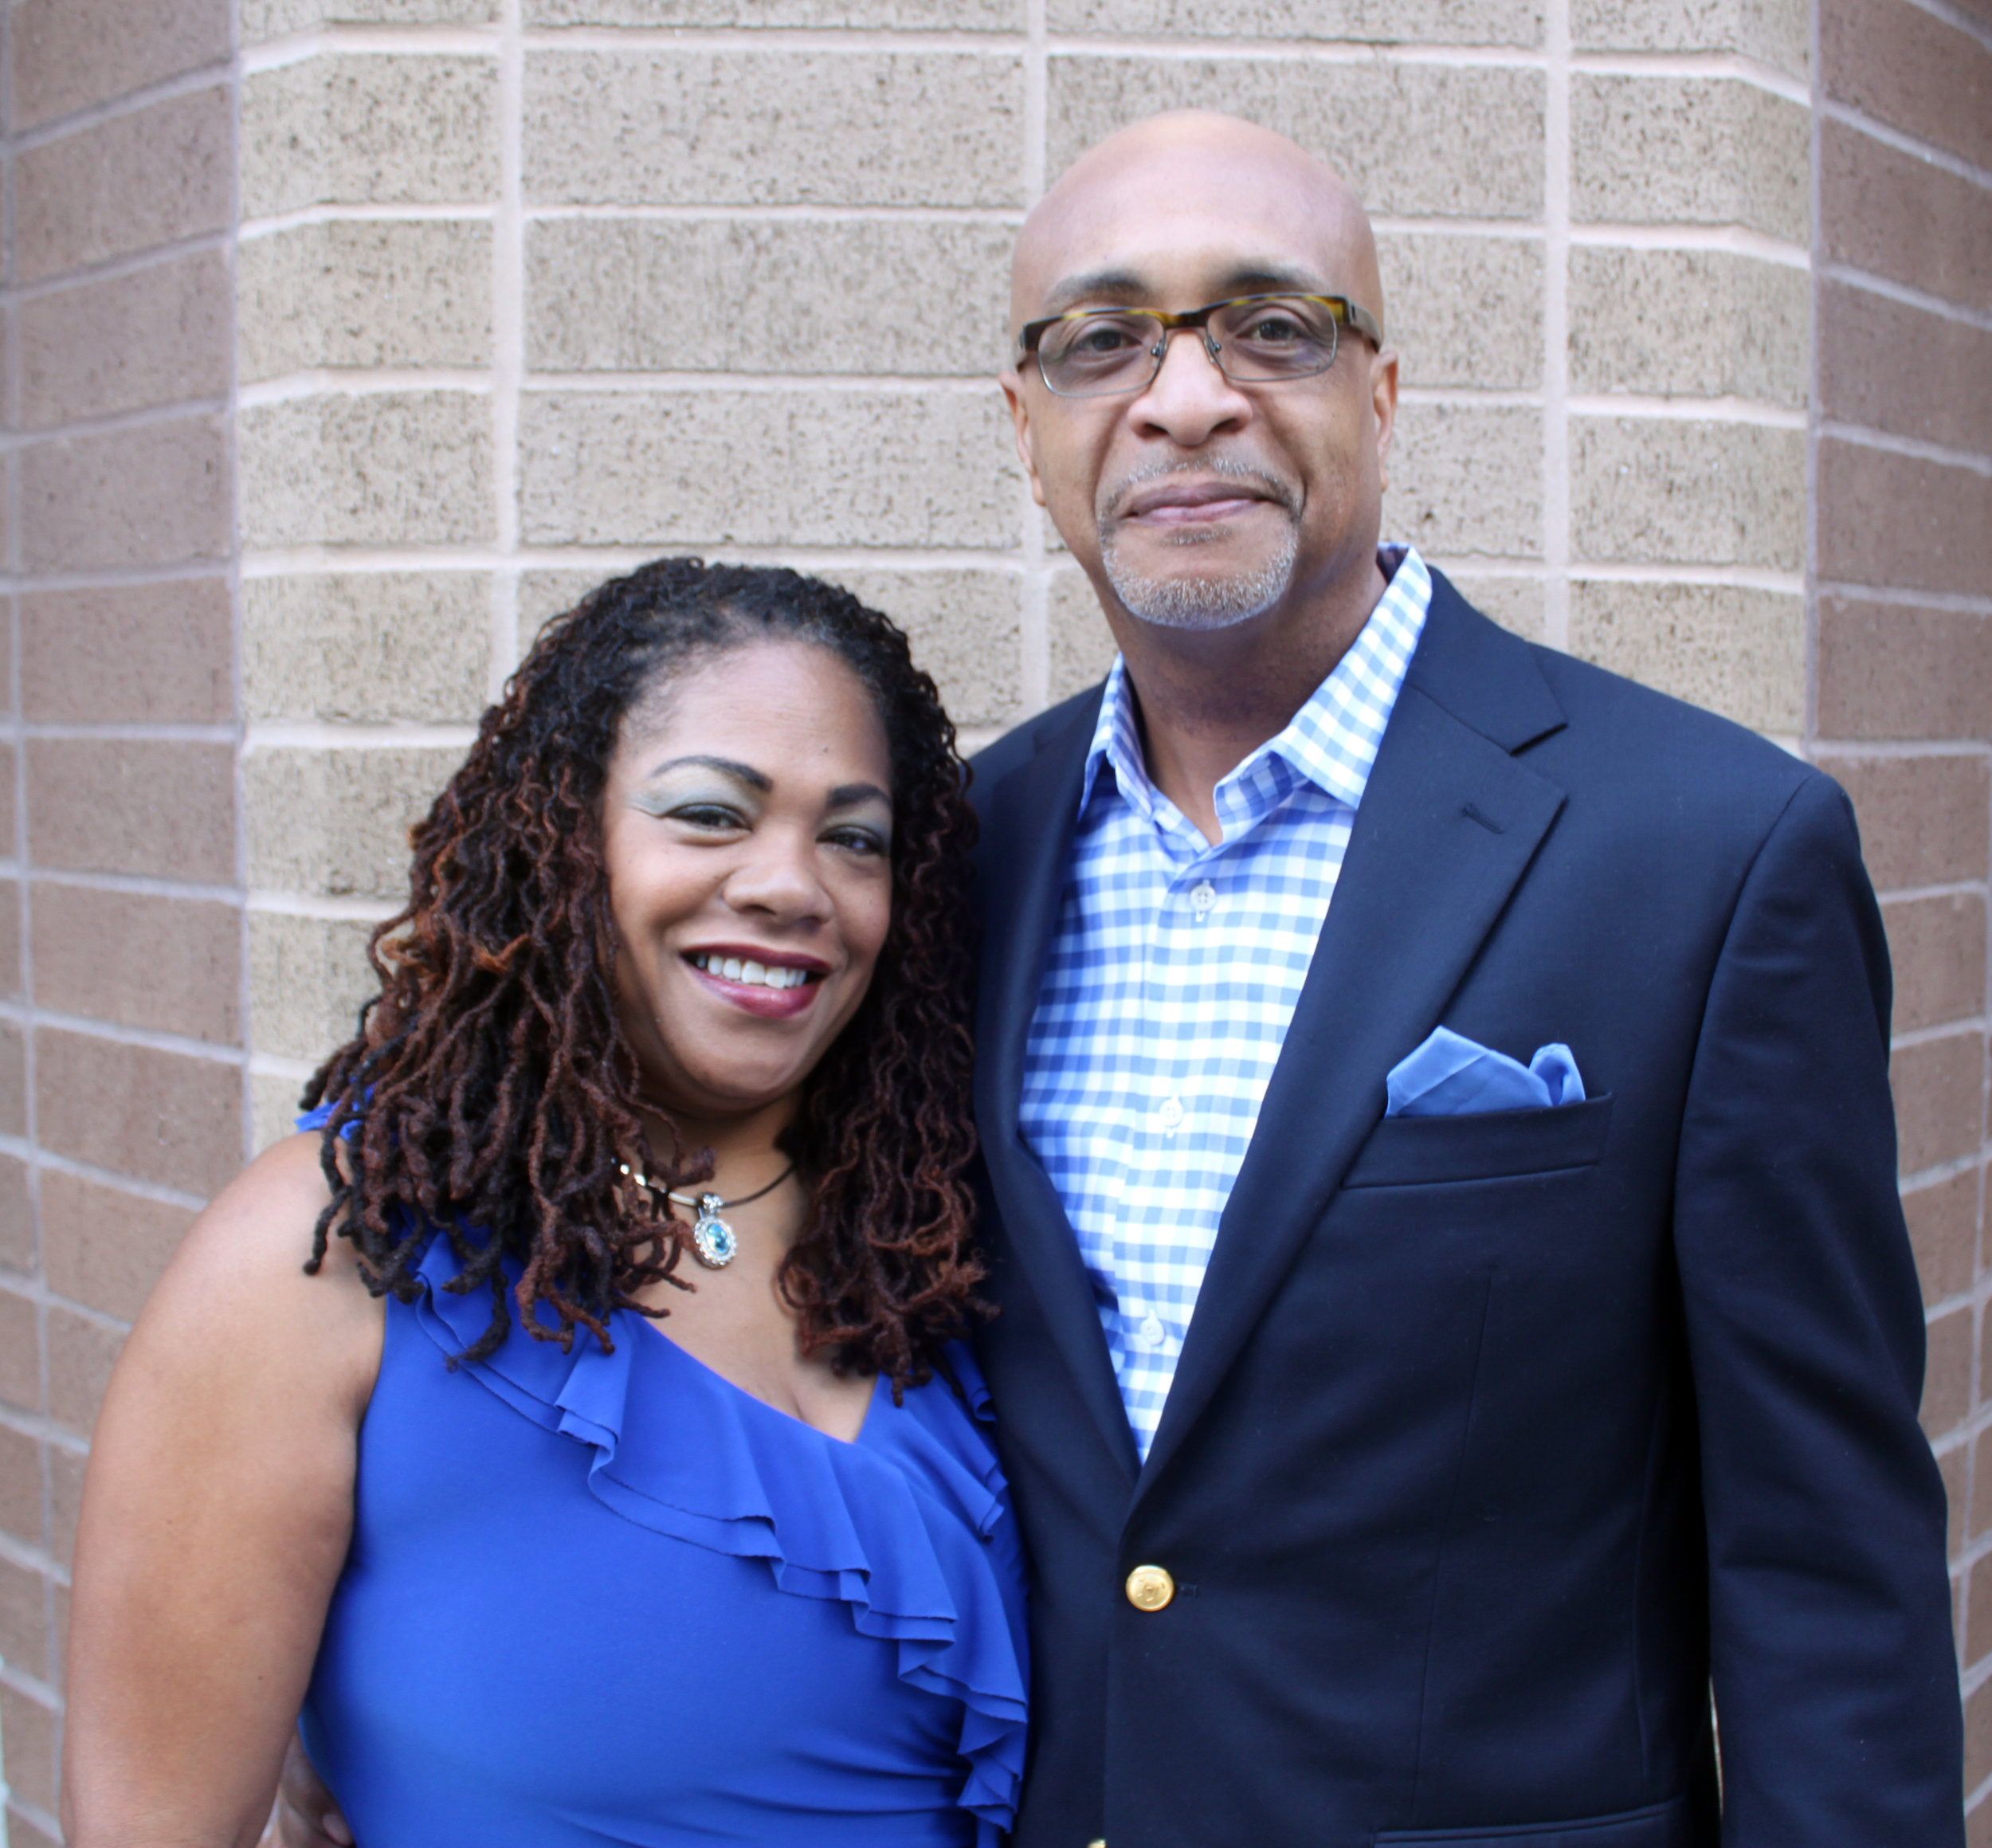 Aundre & Angie Green    Pastor Aundre is the executive pastor of Designer's Way. Originally from Fort Pierce, FL, he holds a Bachelor's Degree in Business Management from Fisk University, in Nashville TN. Angela is originally from St. Louis MO. She holds a Bachelor's Degree in Sociology from Greenville College, in Greenville IL, and a Master's Degree in Human Services & Administration from Springfield College.